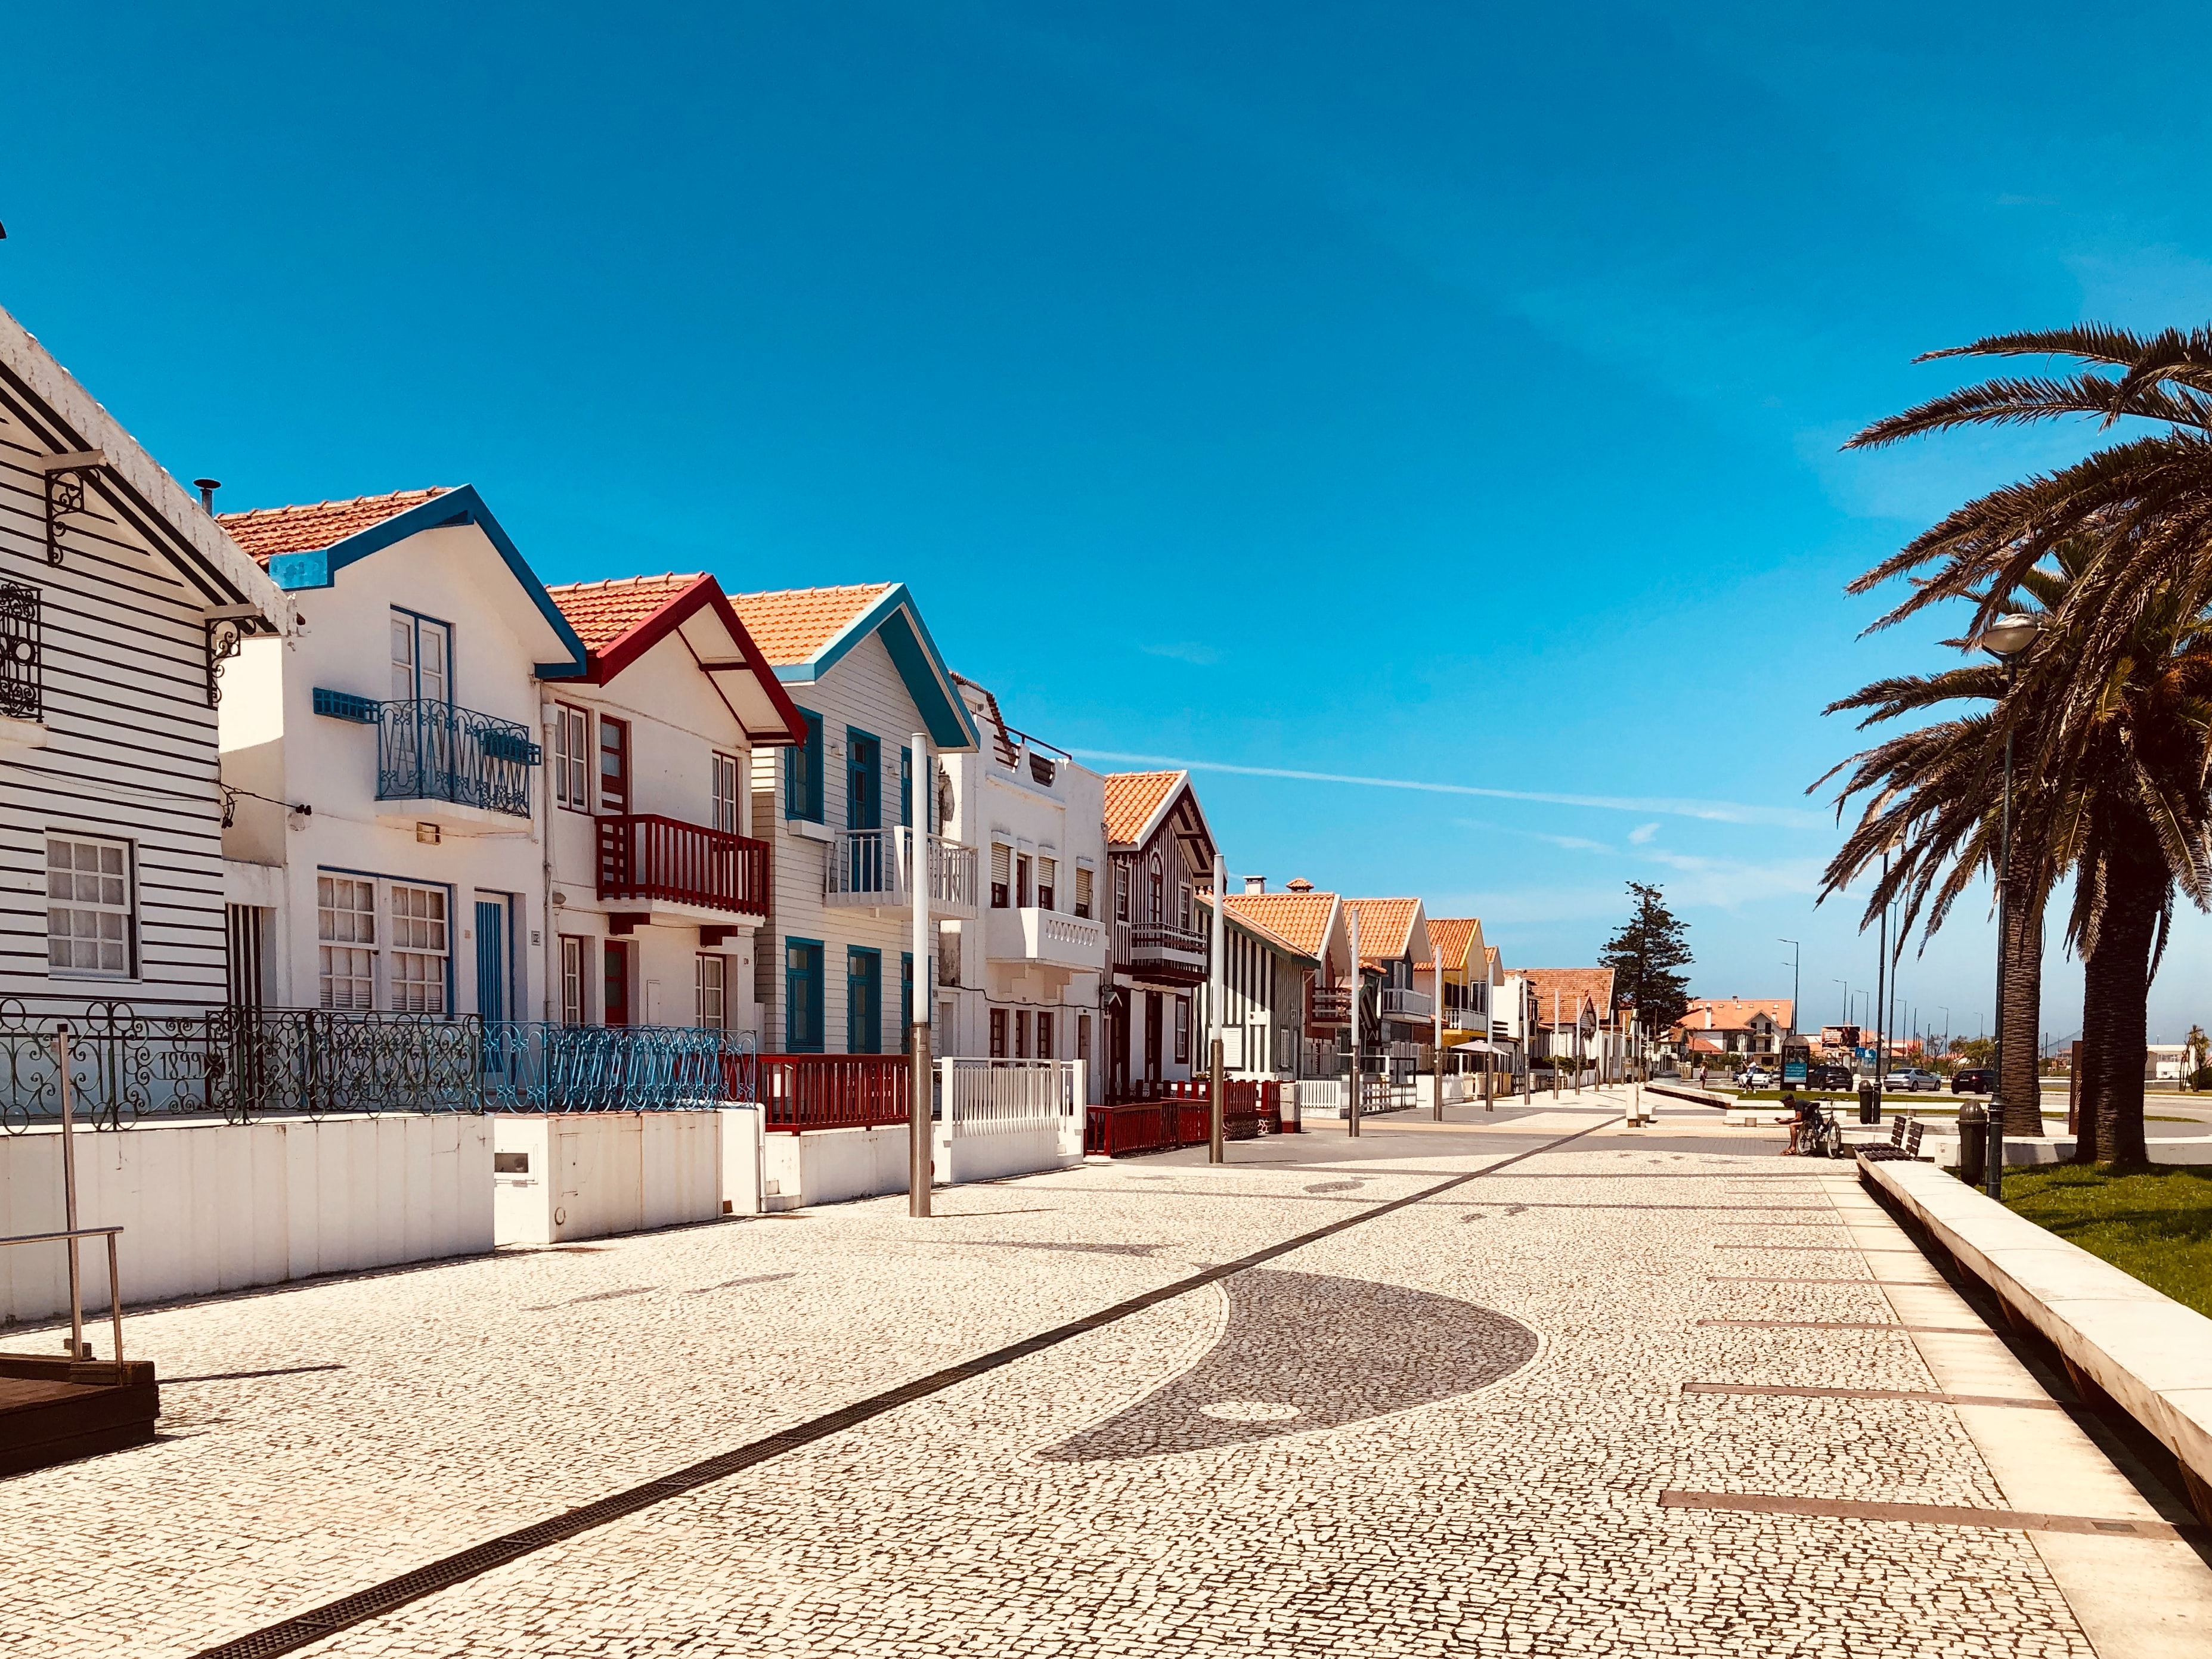 10 Best Things to do in Aveiro, Portugal